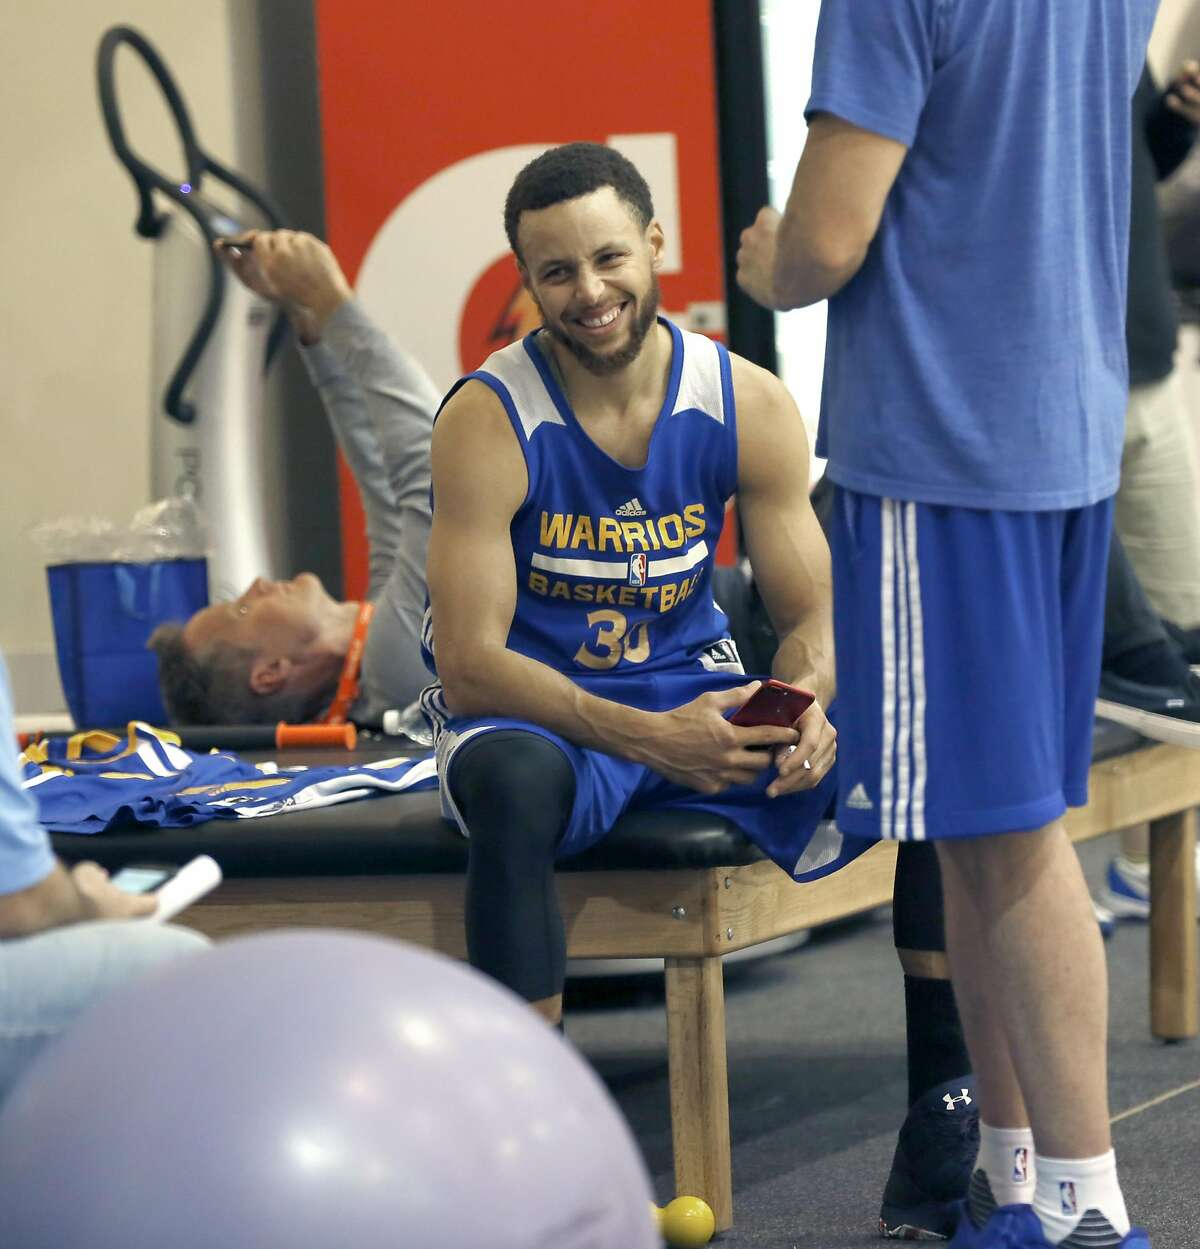 Warriors guard Steph Curry has signaled a reluctance to visit the White House in statements earlier this year. File photo - Warriors Steph Curry after practice on Thursday, May 18, 2017, in Oakland, Calif.